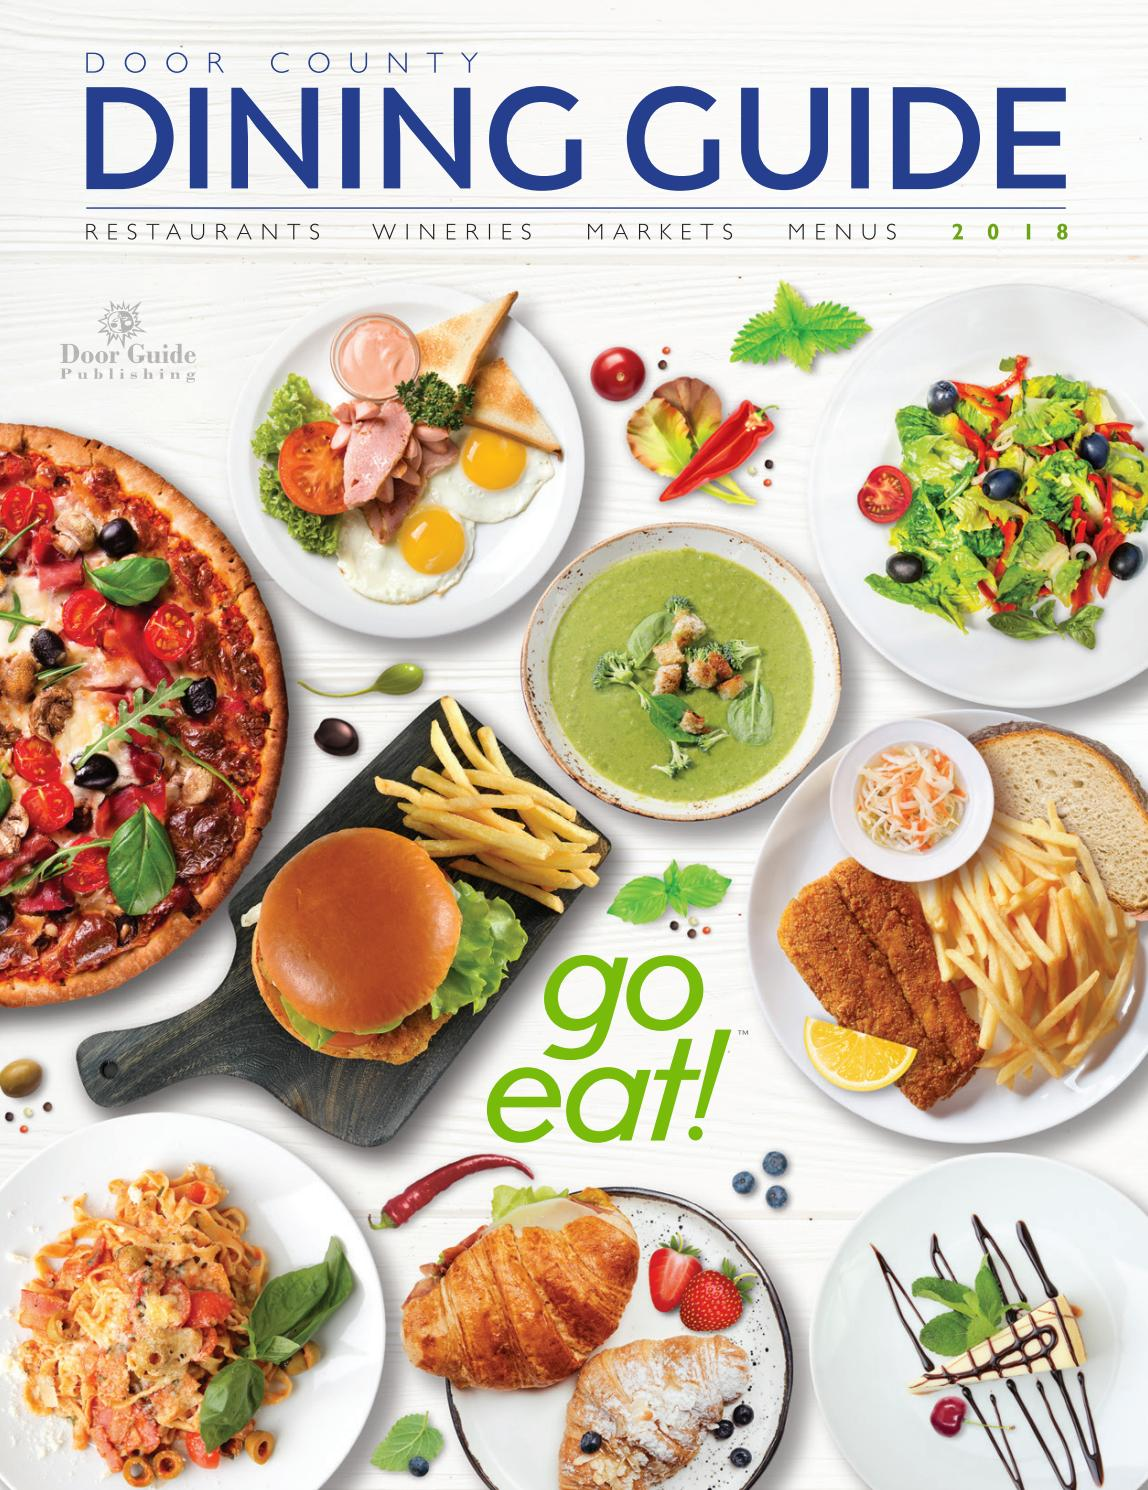 2018 Door County Dining Guide By Door Guide Publishing Issuu